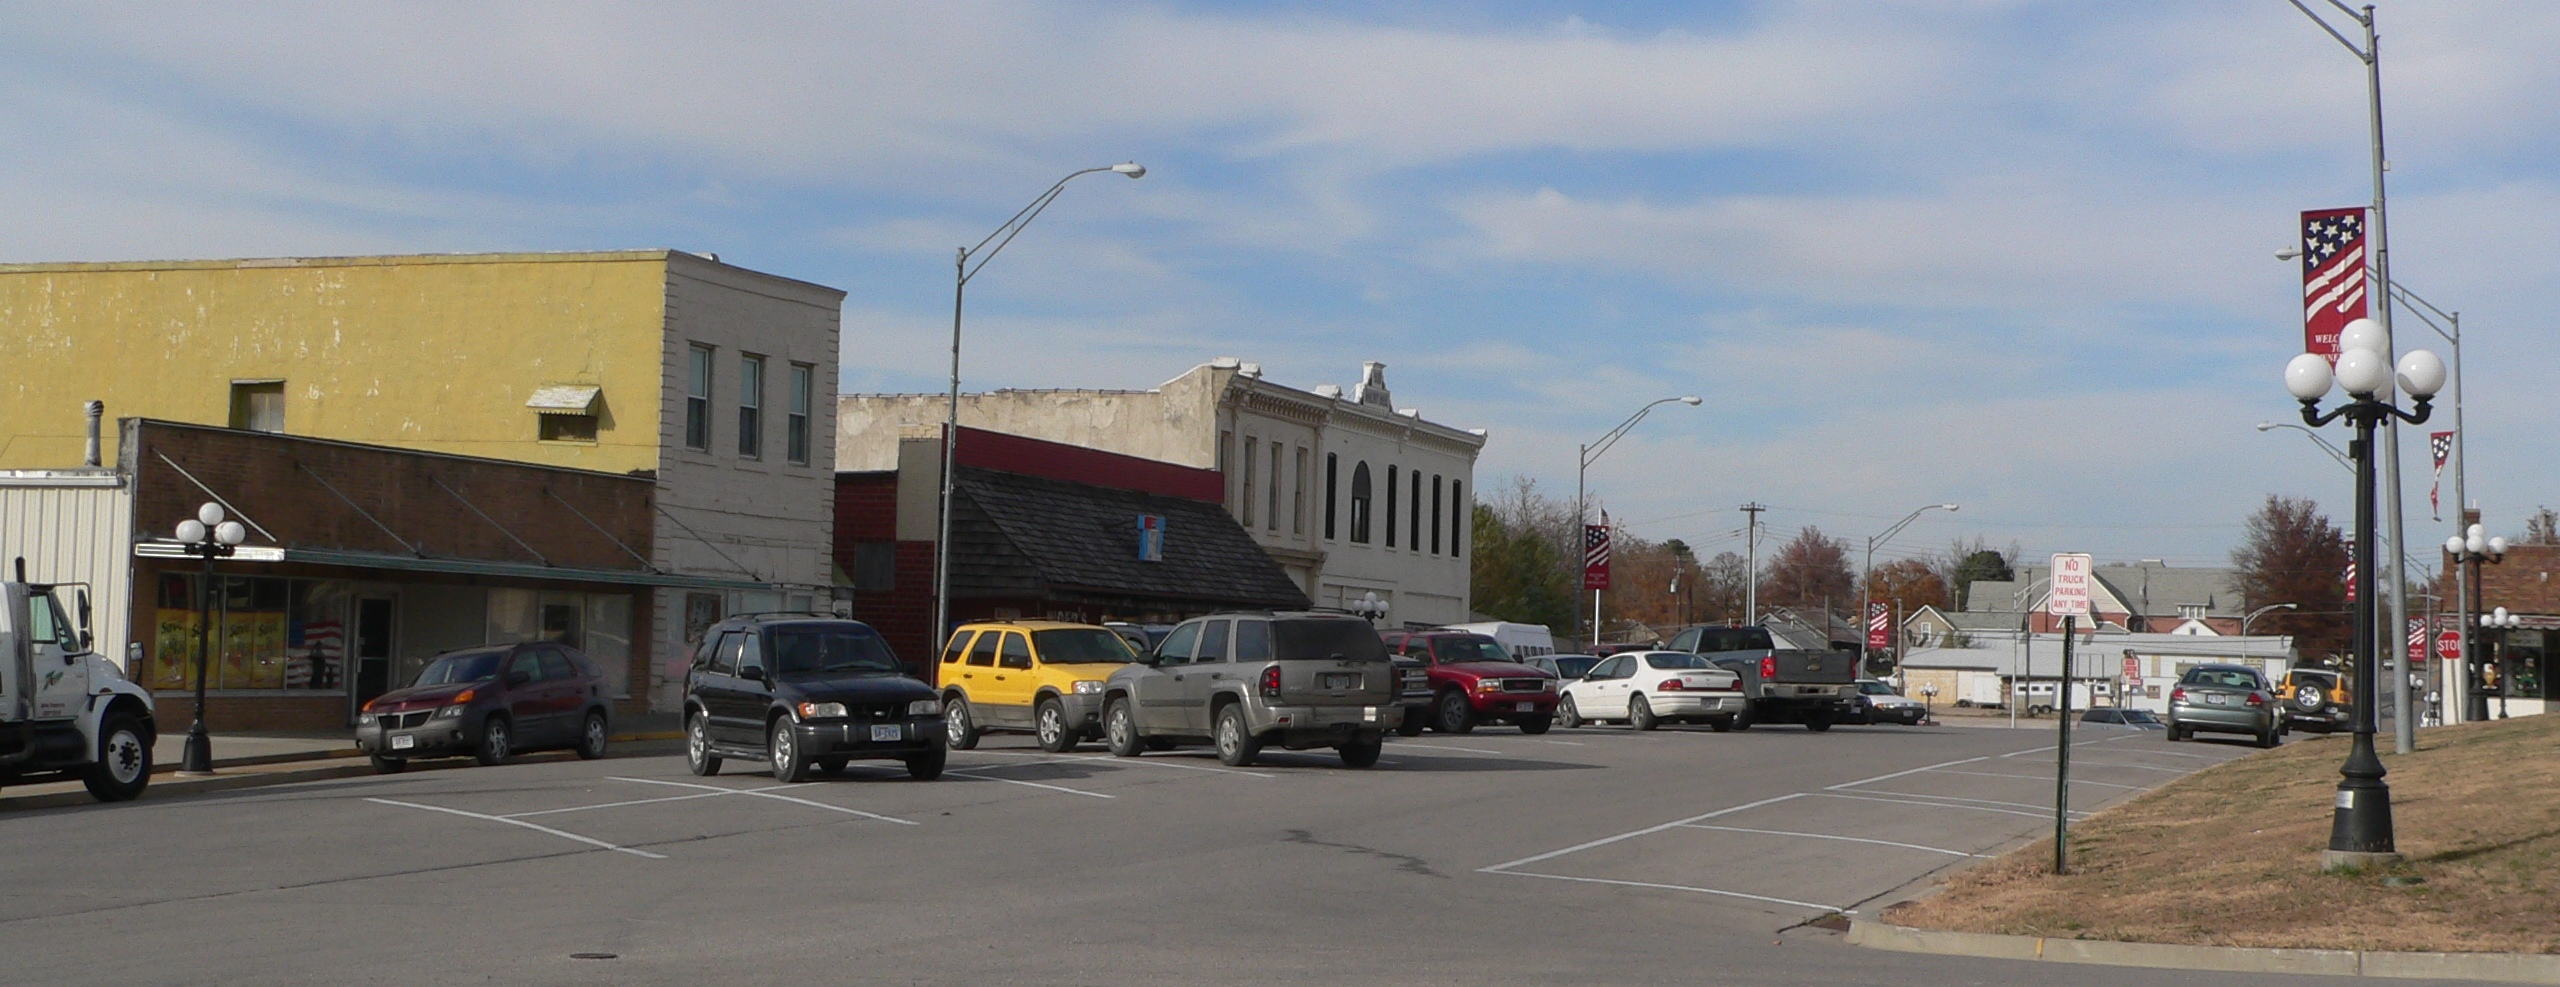 Pawnee City Nebraska >> File Pawnee City Nebraska F From 5th Jpg Wikimedia Commons